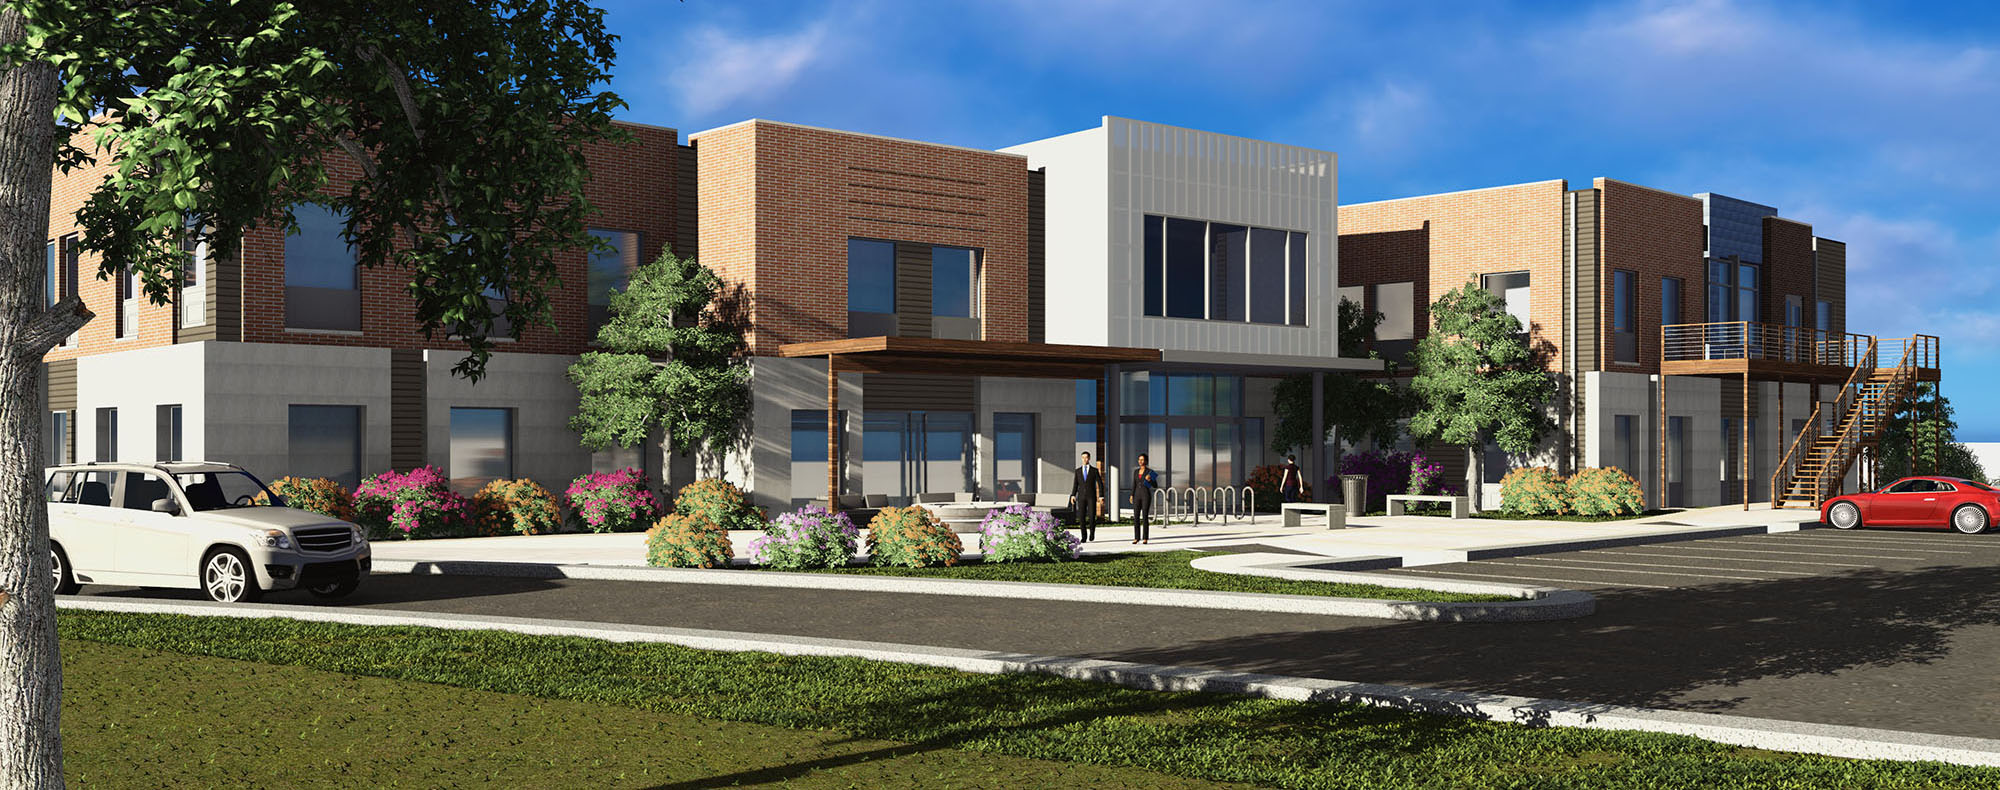 Elevate Brownsburg Rendering 1 1